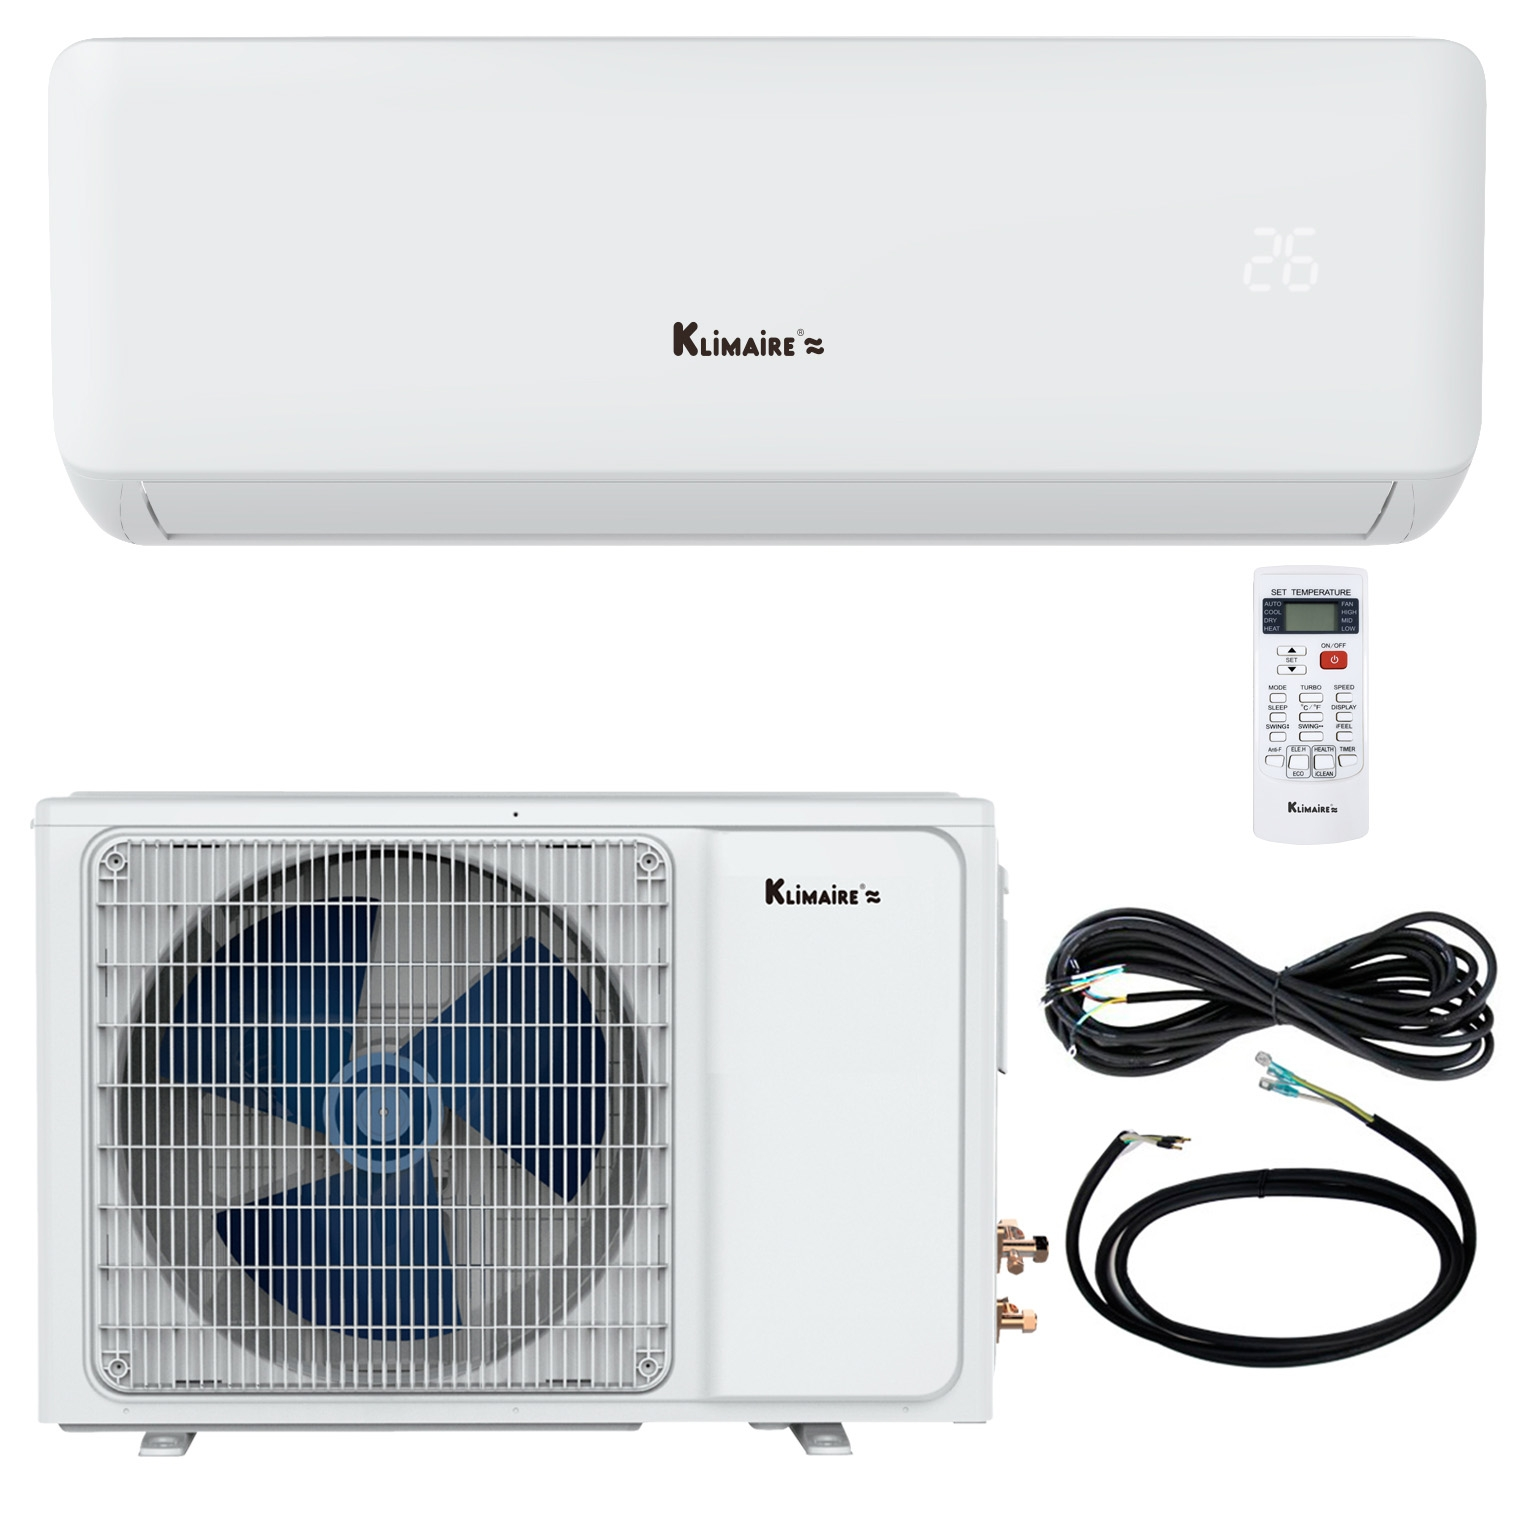 """New KSIA 17 SEER Ductless Mini-Split AC Heat Pump Delivers Comfort to Your Exact Specifications New for 2018, Klimaire has launched the KSIA Series of ductless mini split air conditioner heat pumps. Stand out features include comfort modes like """"Feeling"""" and turbo, along with energy efficient DC inverter technology. With the Feeling function activated, the temperature sensor moves from the wall unit to the remote control. For the ultimate in precision comfort, the sensor directs the mini split to adjust heating and cooling based on the temperature immediately surrounding anyone carrying the remote. 17 SEER DC inverter system saves energy and keeps temperature steady Full-function LED remote control Turbo mode cools or warms up the room fast KSIA's indoor unit is wall mounted and includes an easy-access washable filter and easy-wipe front panel. The matching outdoor unit combines heat pump and inverter technology for 17 SEER high efficiency cooling and up to 9 HSPF (10.3 COP) for heati"""